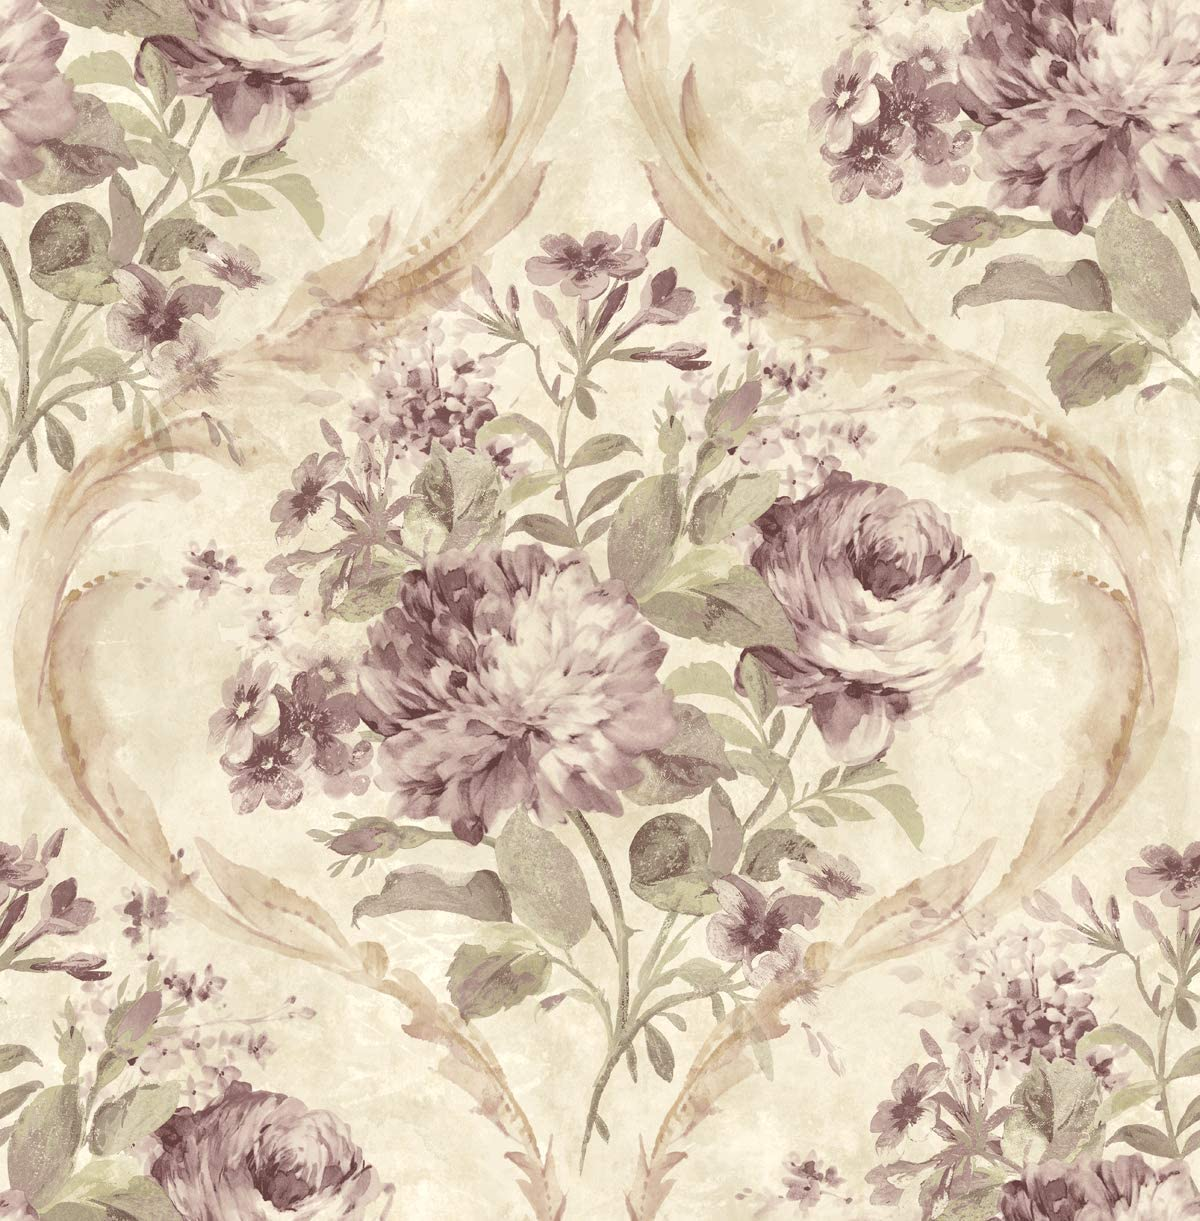 Rose Wallpaper Floral Vintage Wallpaper Floral Purple Wallpaper